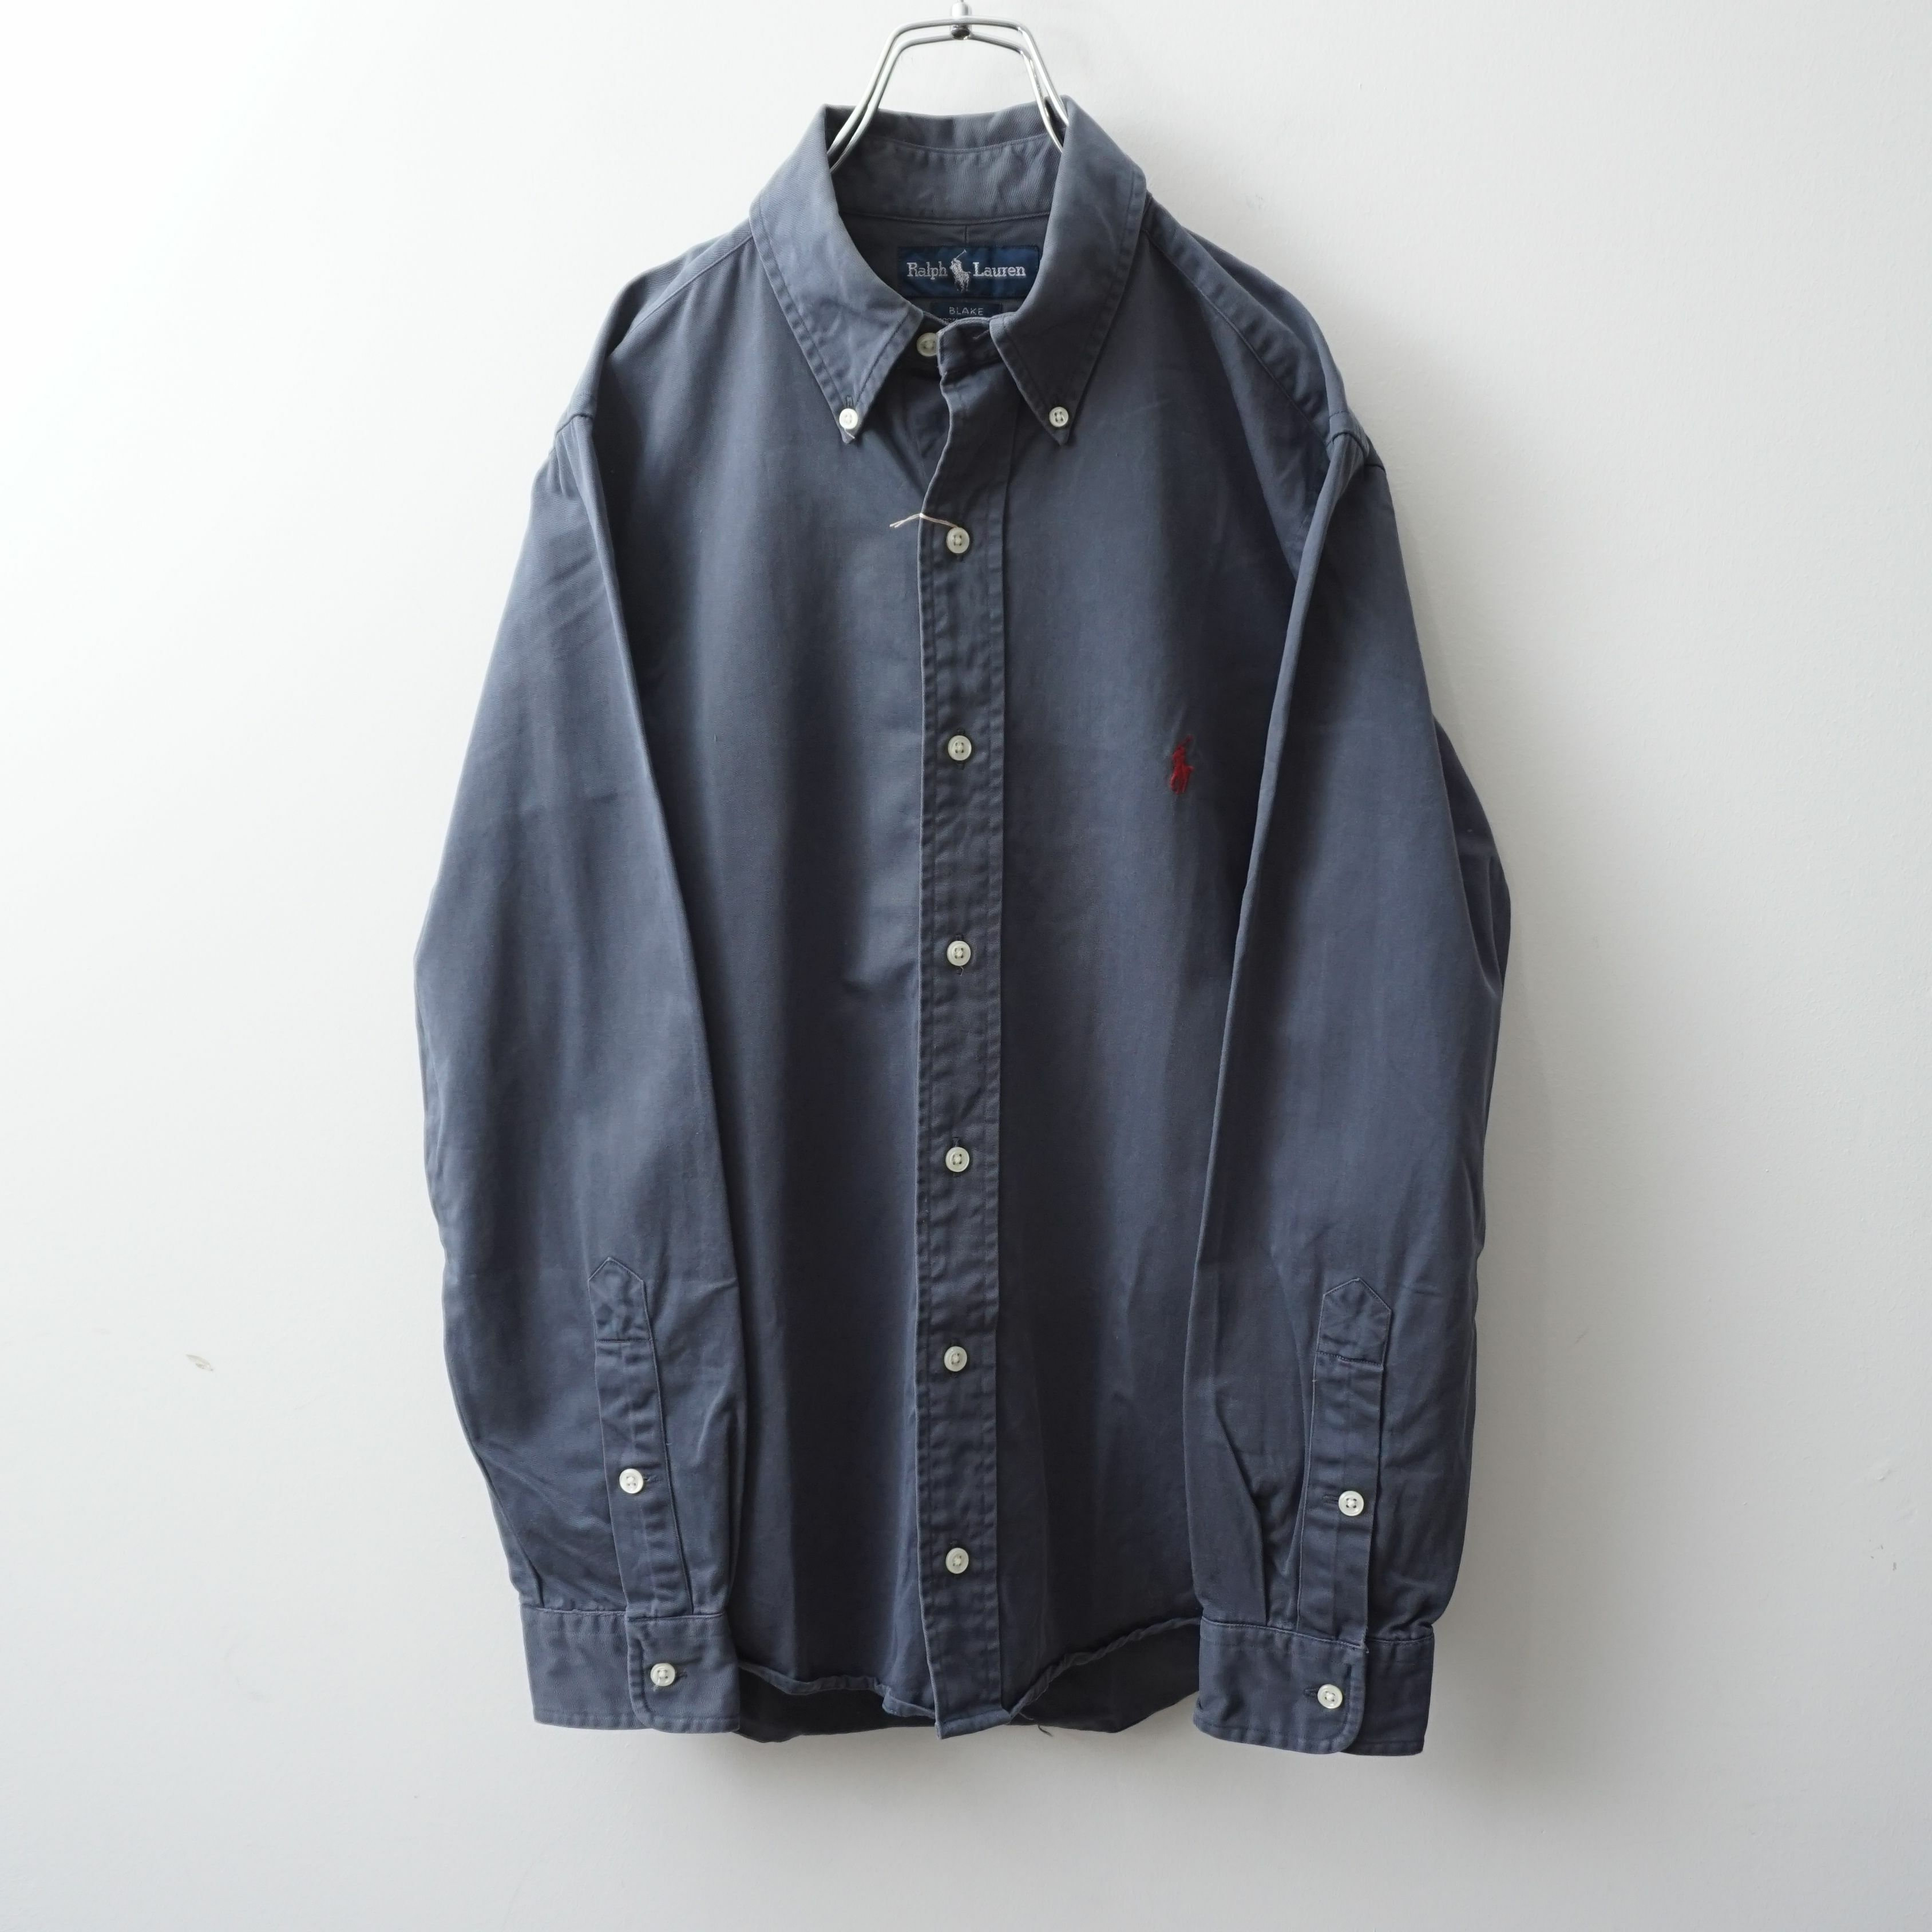 Ralph Lauren botton-down shirt